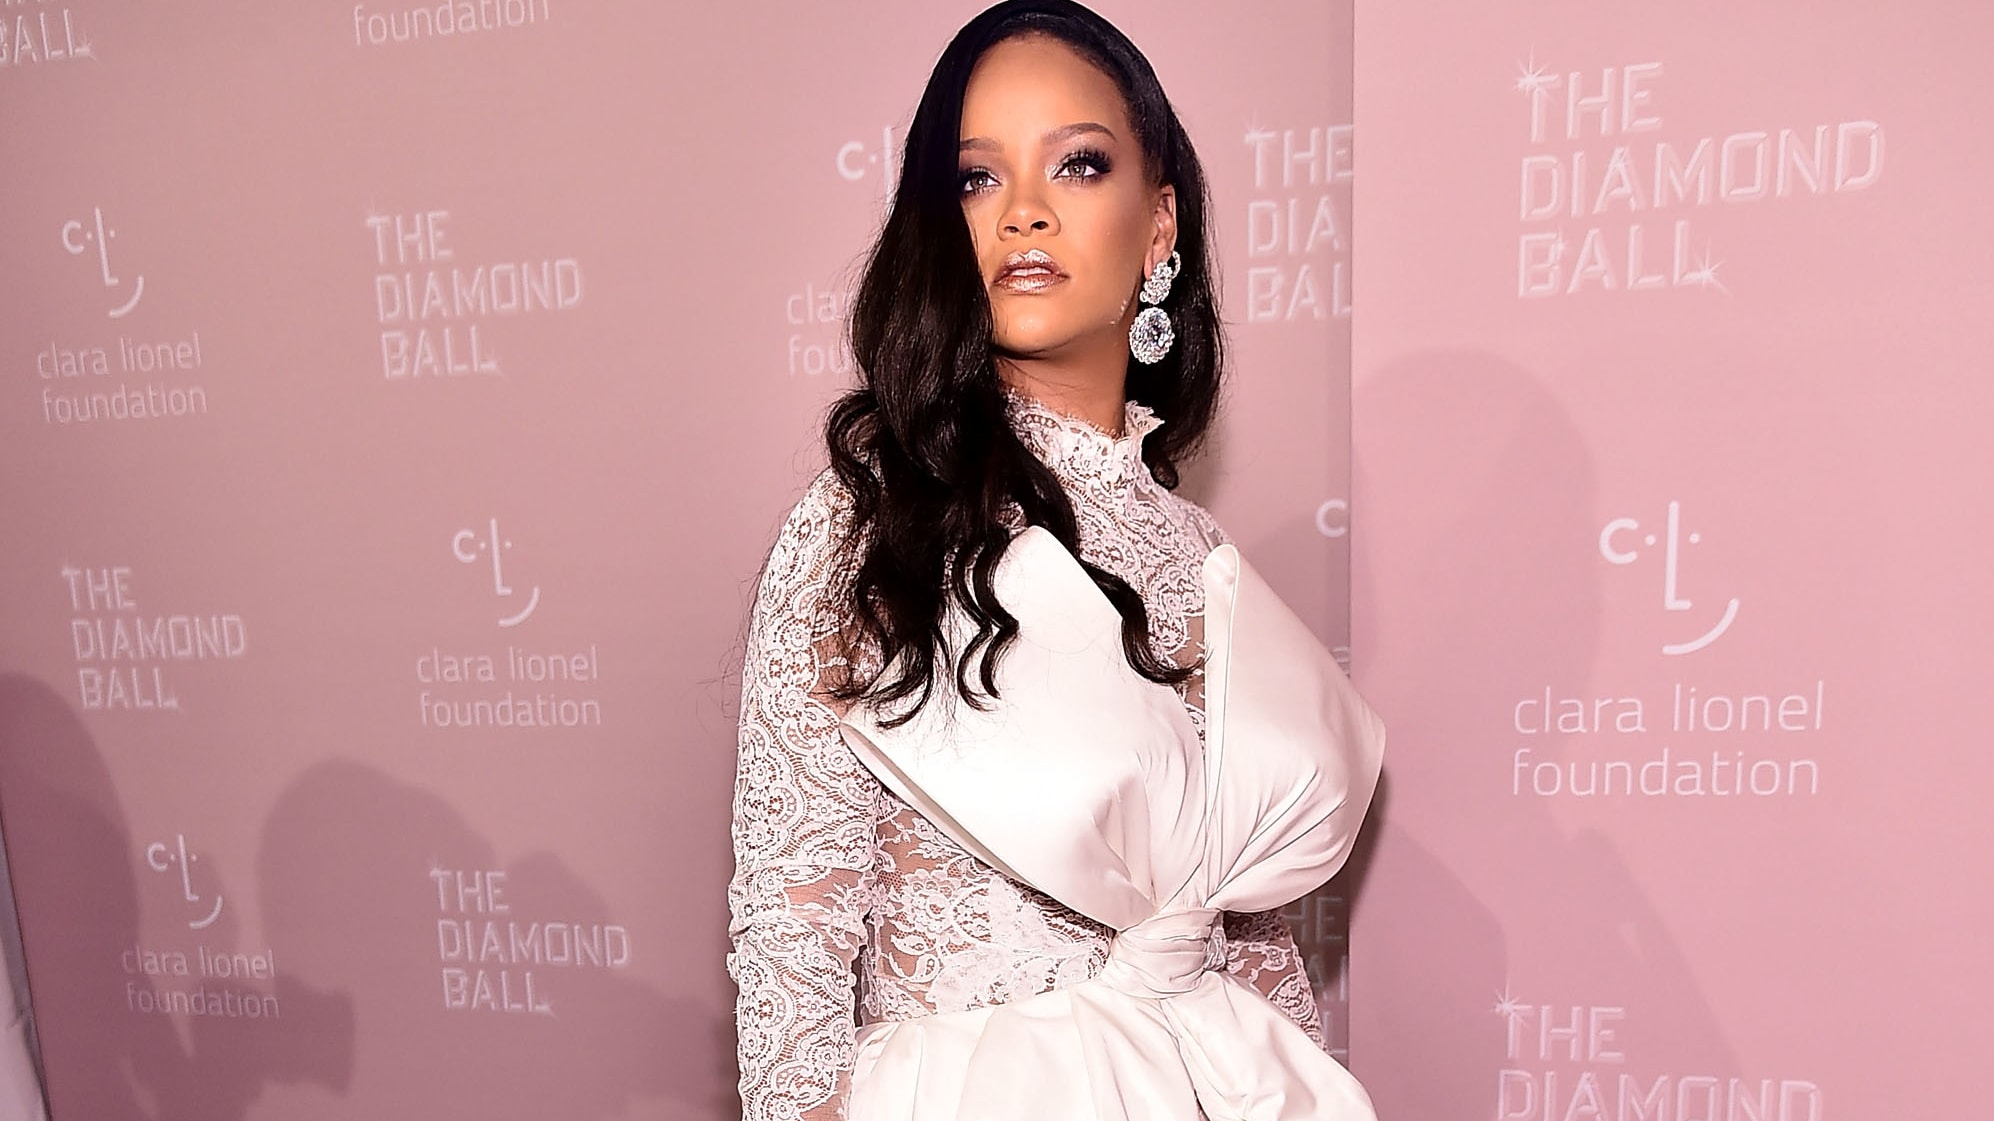 NEW YORK, NY - SEPTEMBER 13:  Rihanna attends Rihanna's 4th Annual Diamond Ball at Cipriani Wall Street on September 13, 2018 in New York City.  (Photo by Theo Wargo/Getty Images)